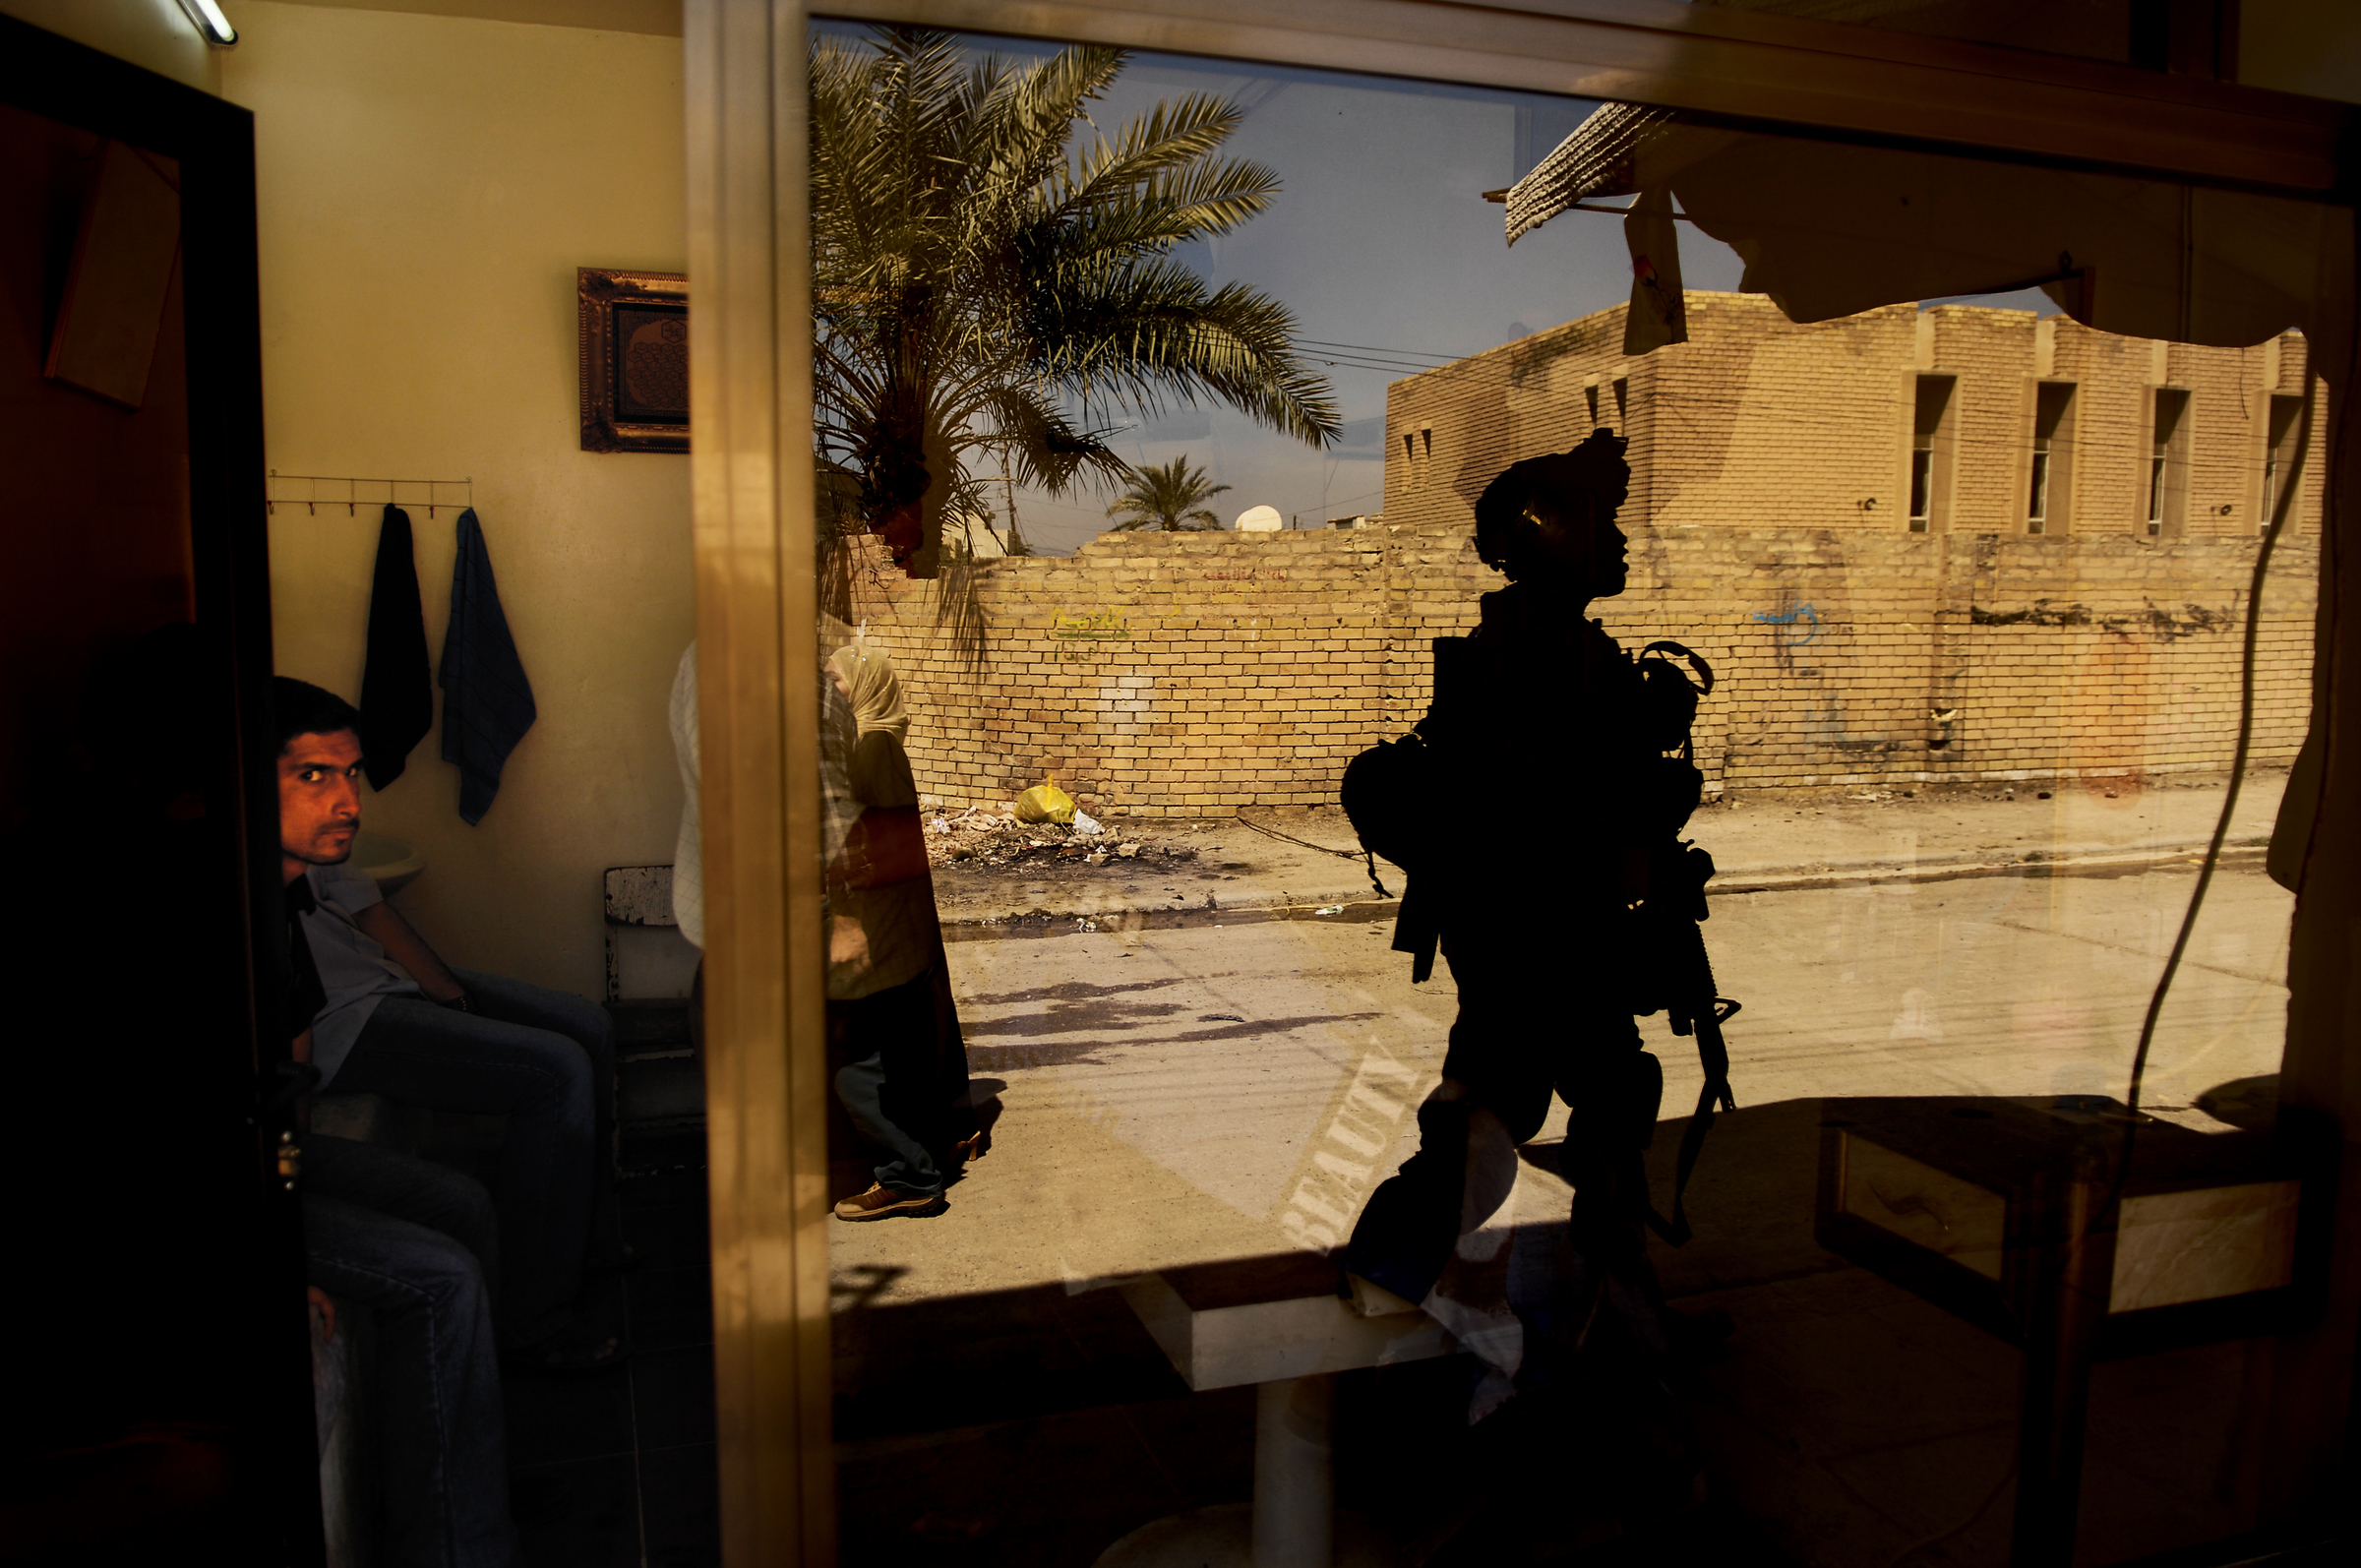 U.S. Army Pvt. 1st Class David Banks is eyed by locals as he walks past a barber shop during a cordon and search in Old Baqubah, Iraq. 2007 © Stacy L. Pearsall